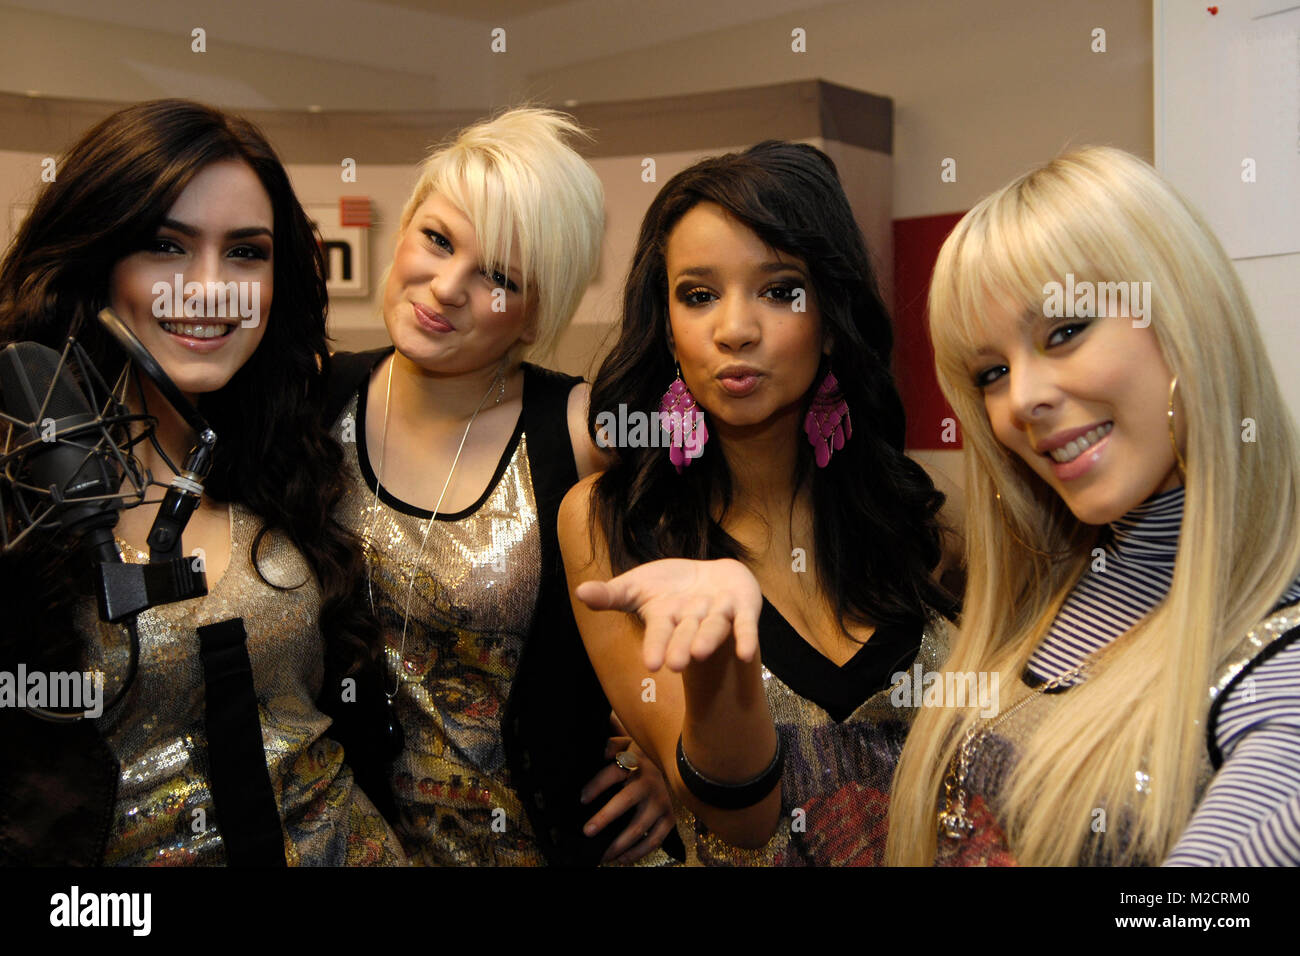 Girlband stock photos girlband stock images alamy die pro7 popstars girlband queensberry v antonella victoria gabriella voltagebd Images